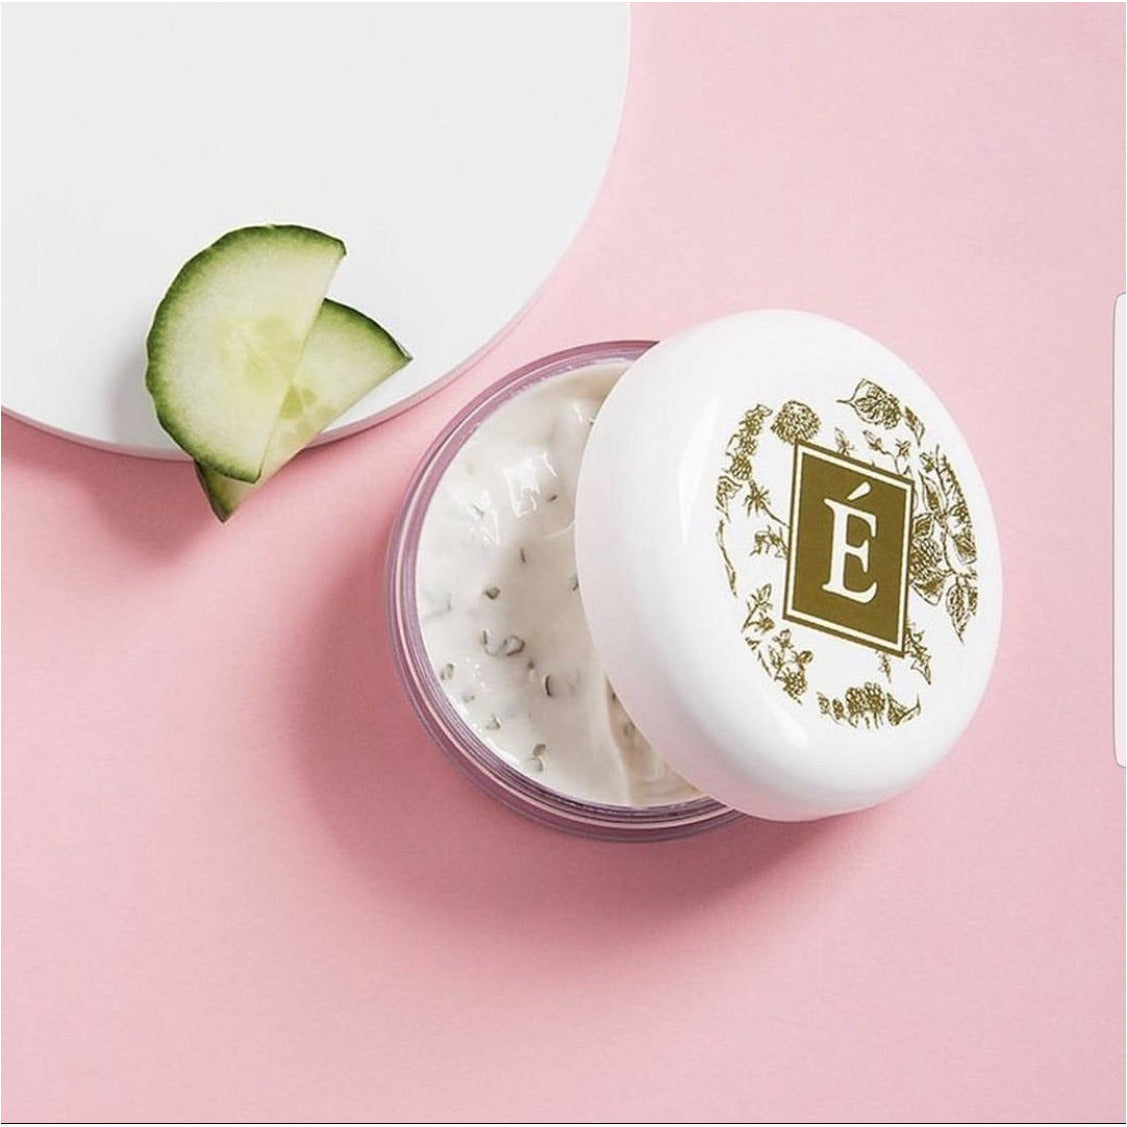 Eminence Organics Clear Skin Probiotic Masque